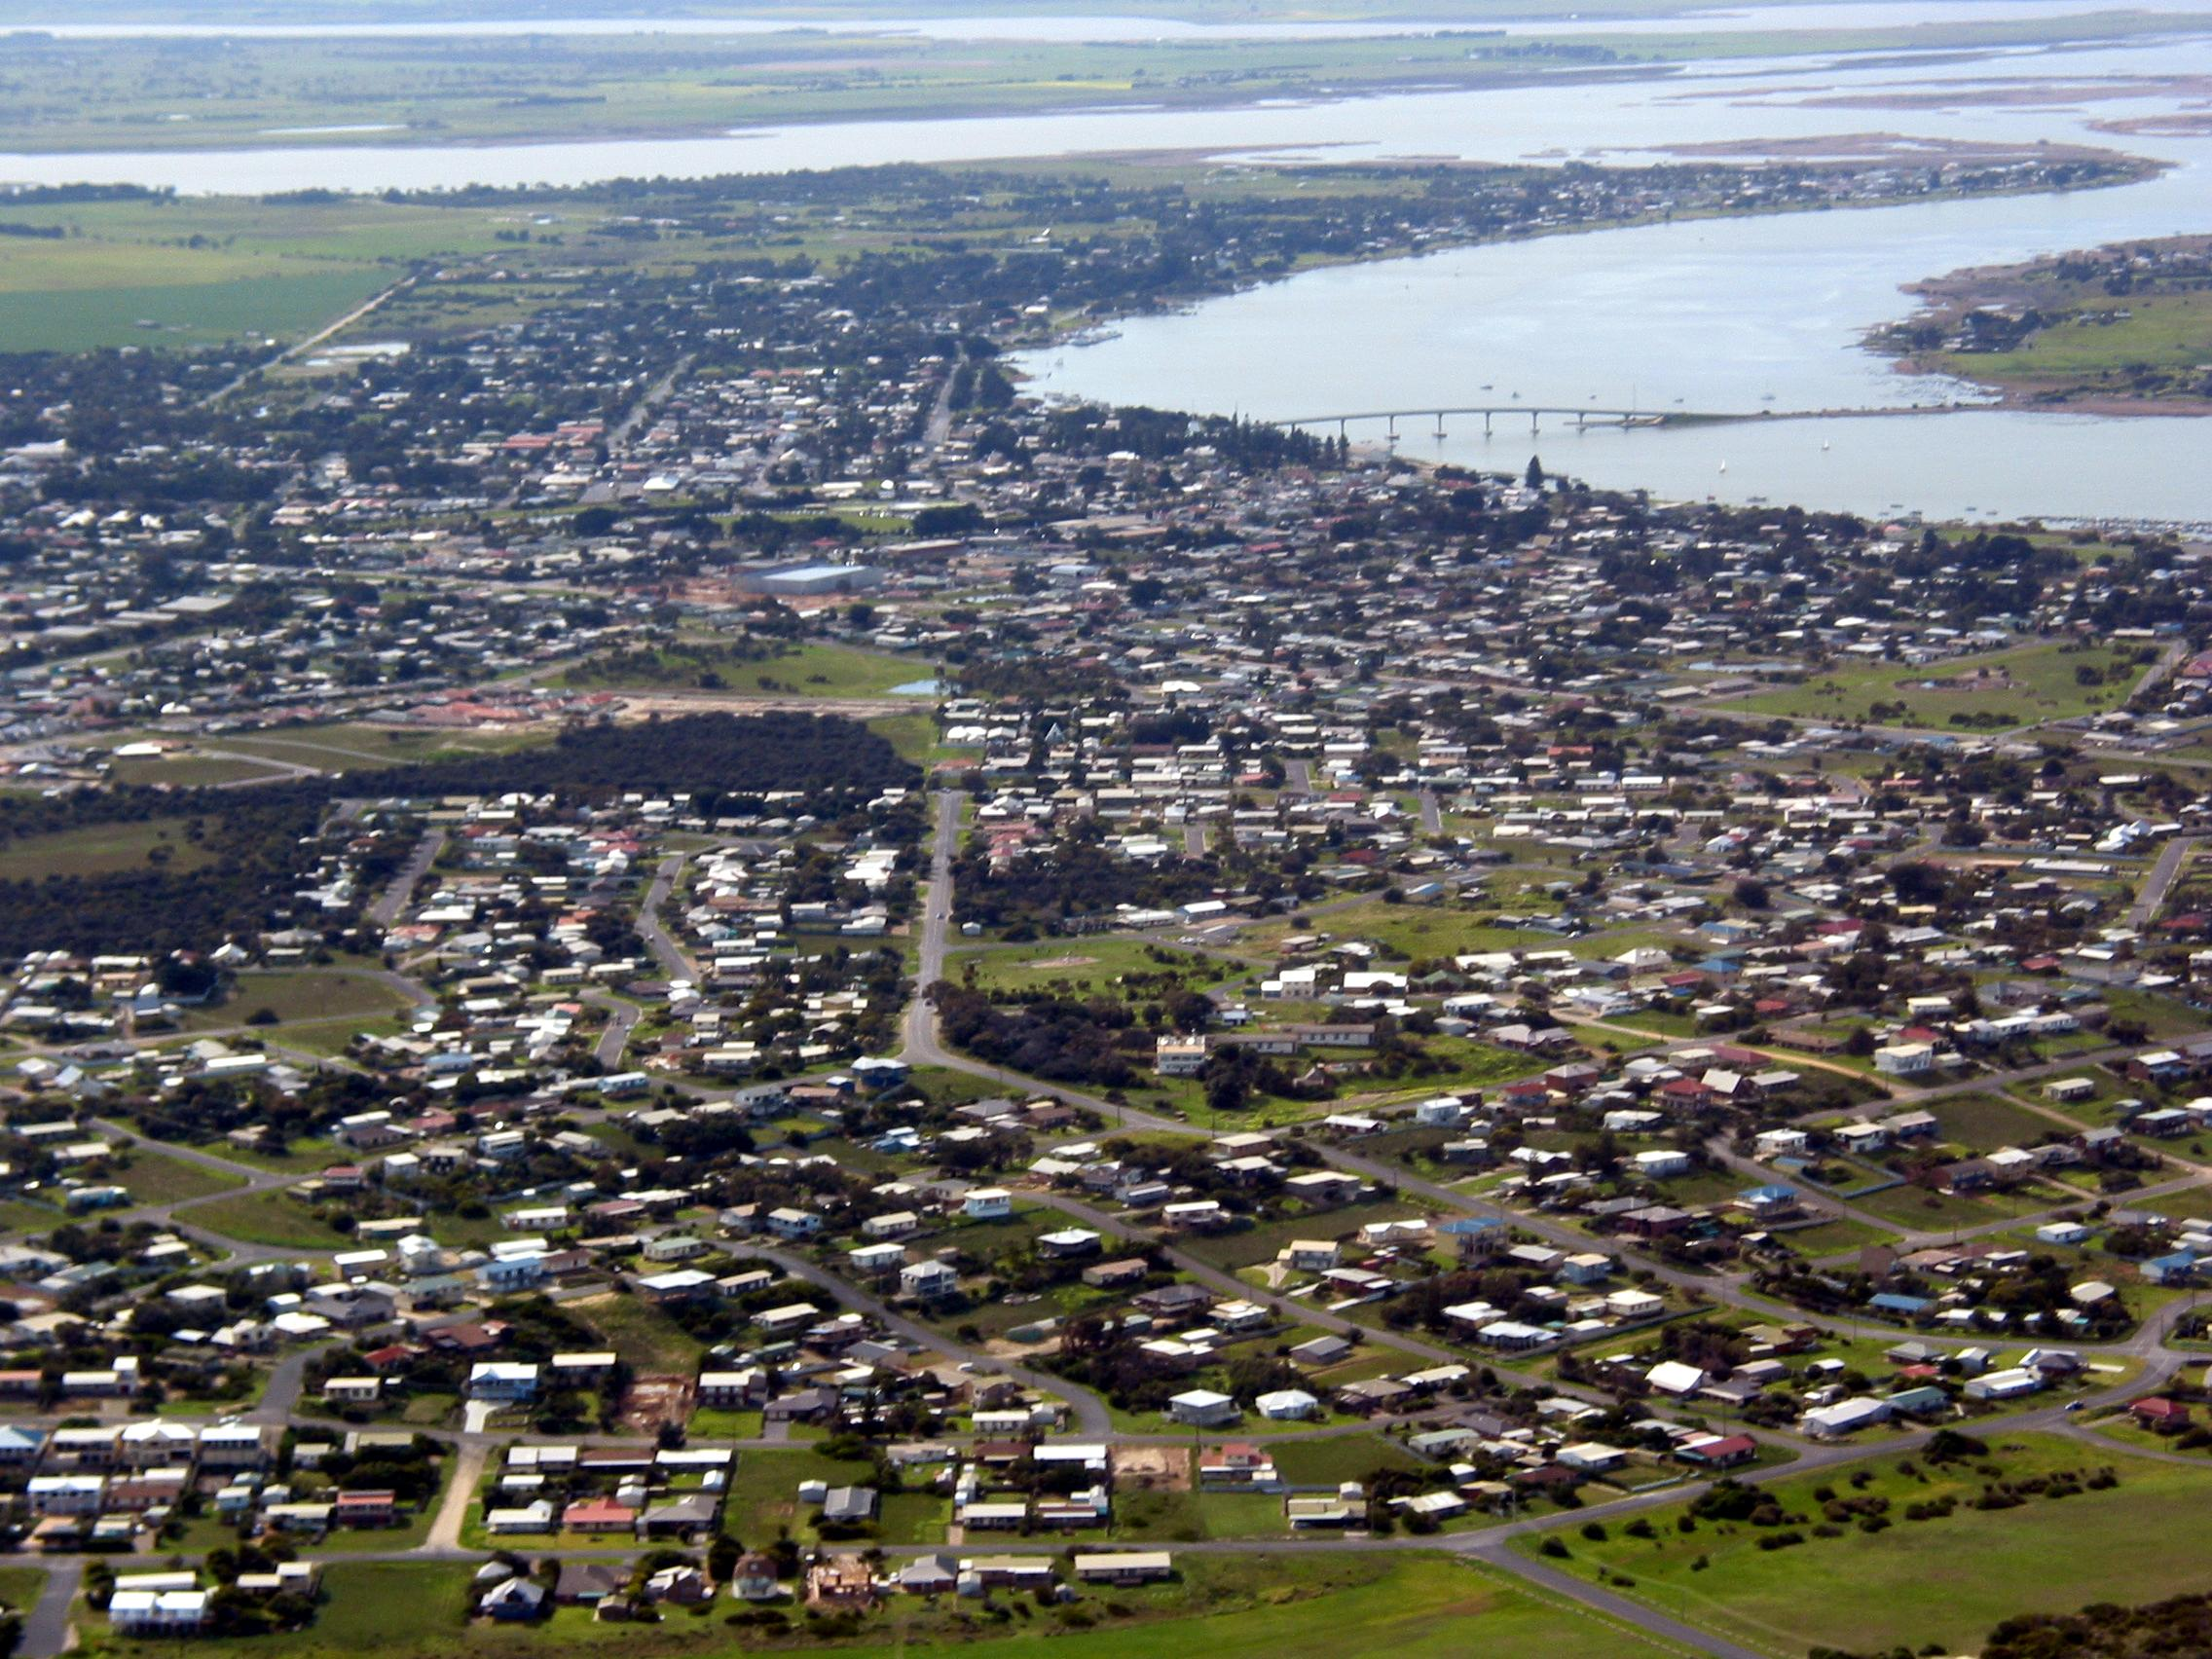 View of Goolwa township